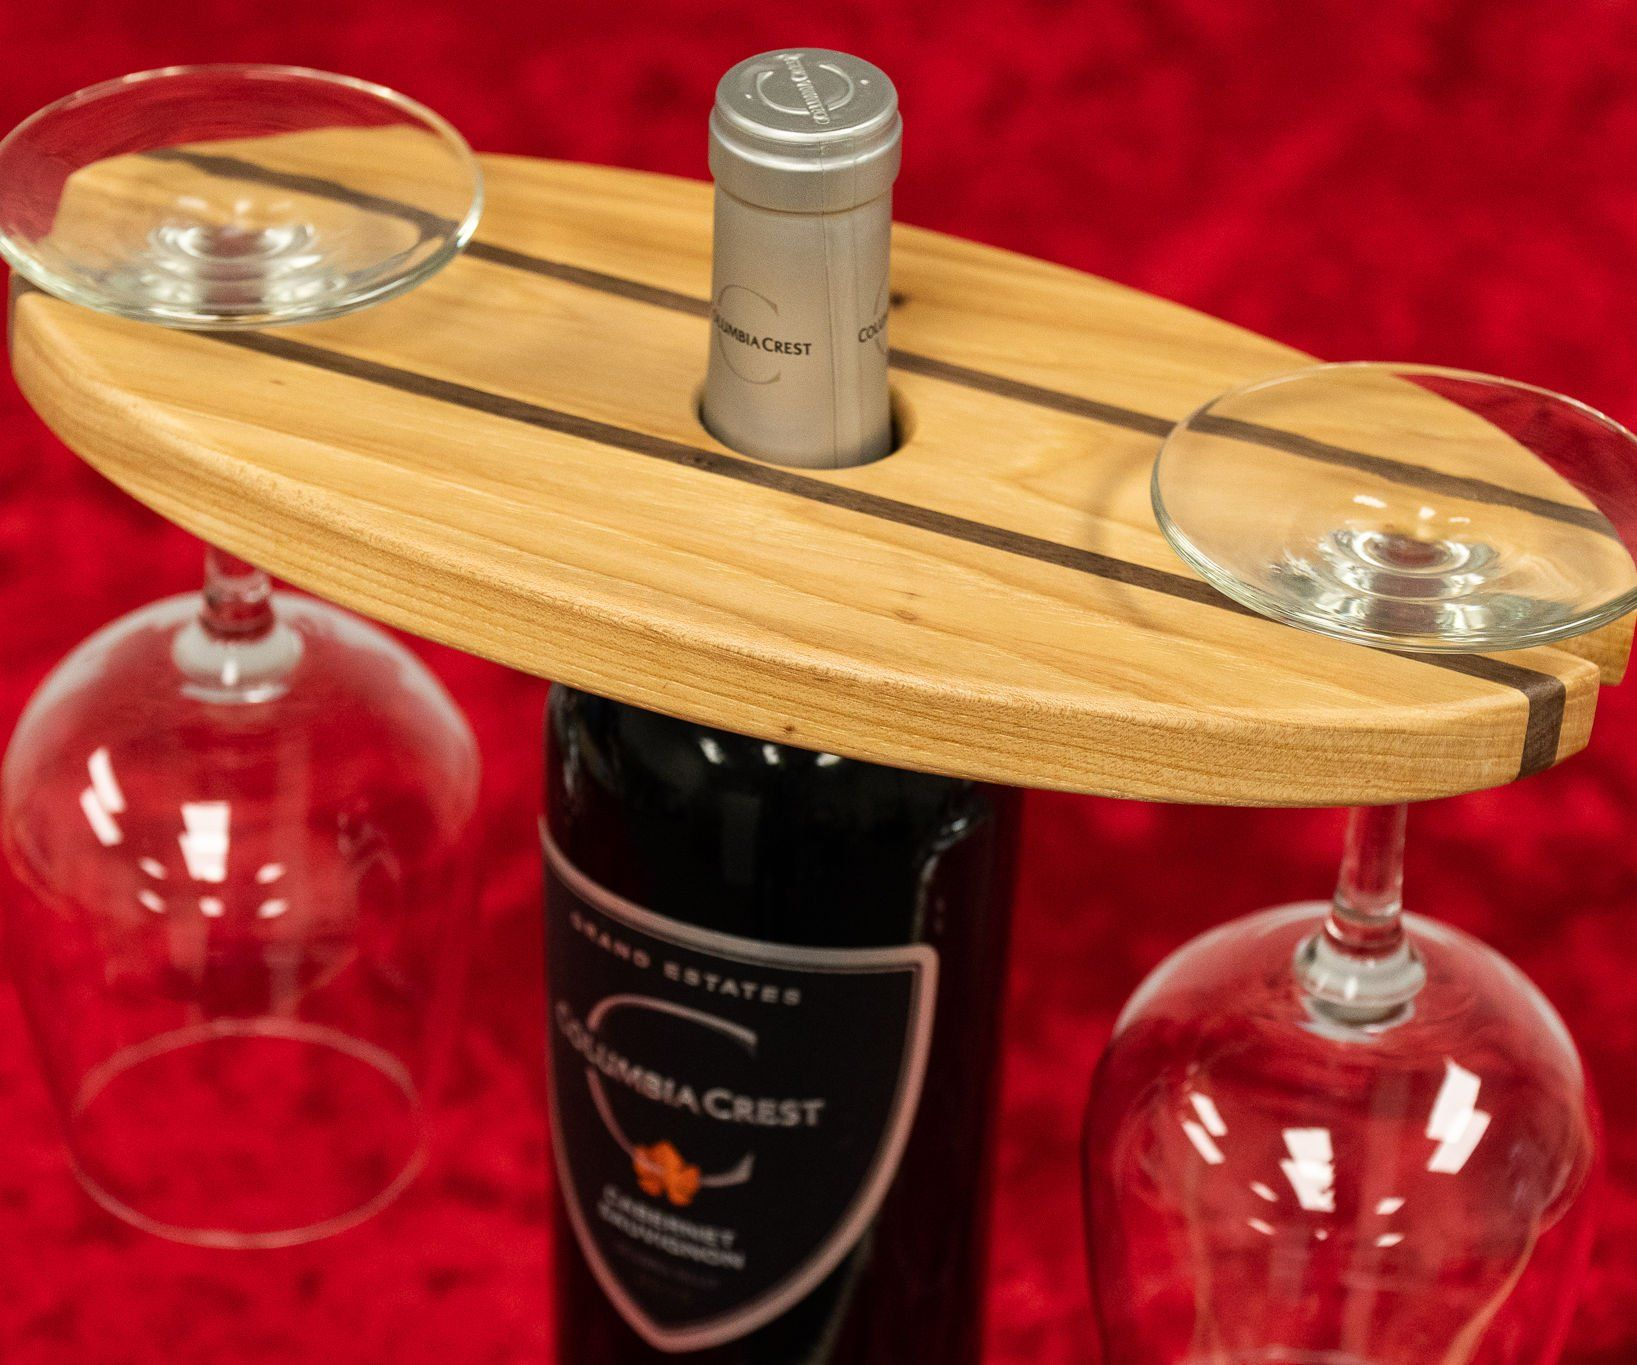 How To Make A Wine Bottle And Glass Display Wine Making Wine Bottle Wine Display